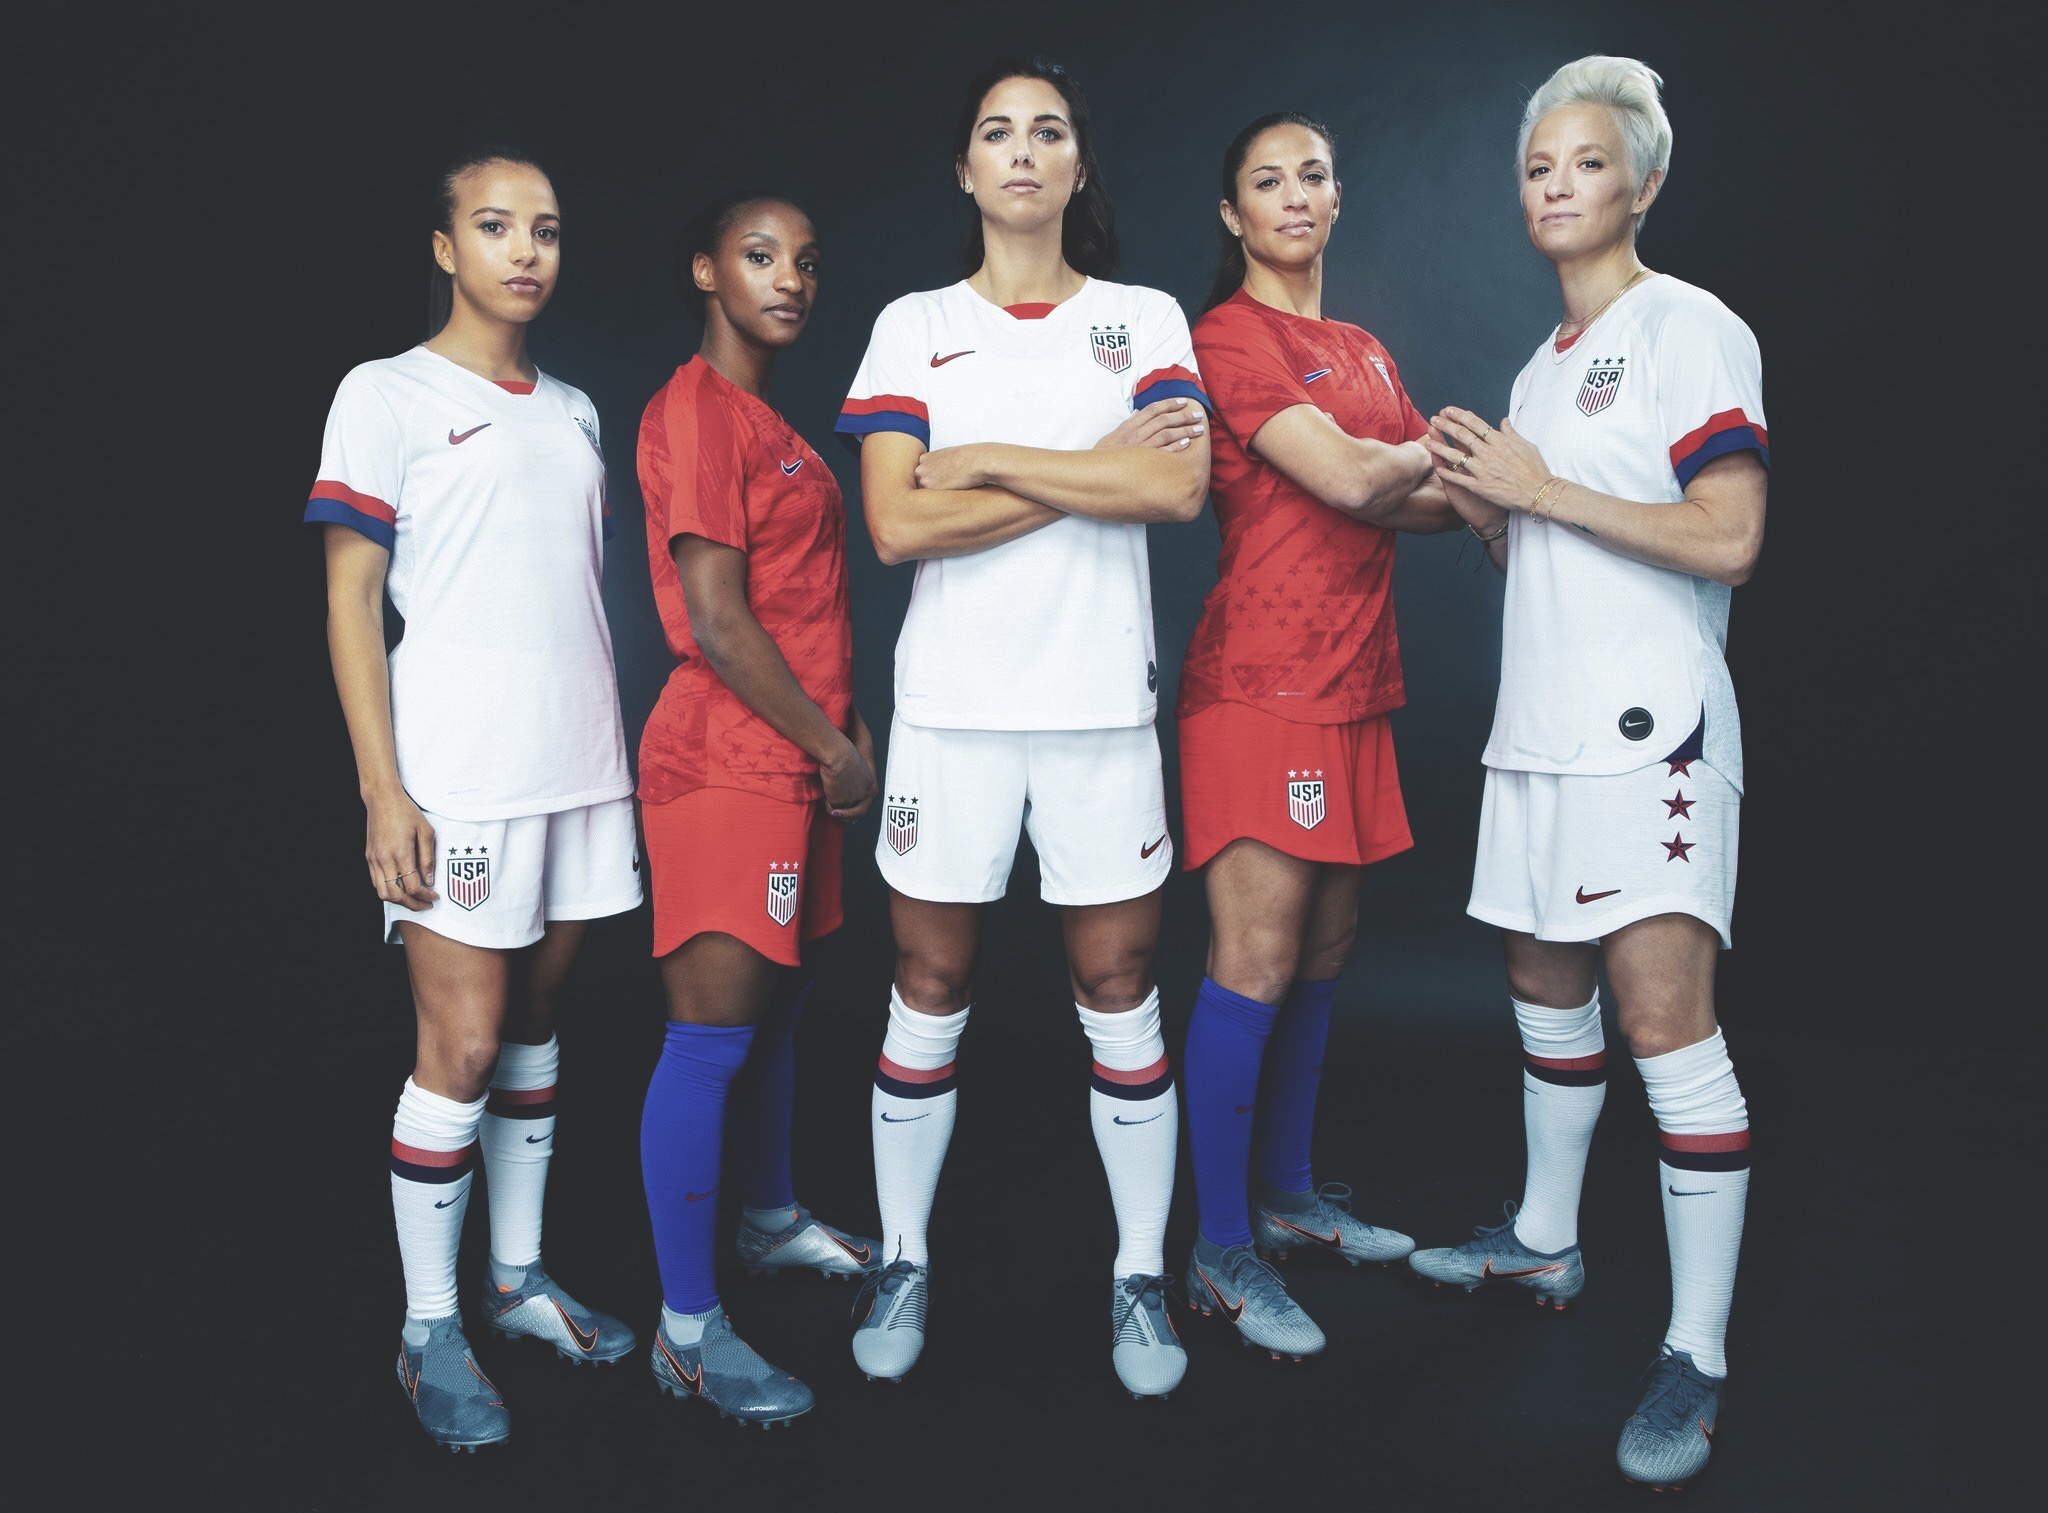 The US Women's national team modelling their new home and away kit for the 2019 World Cup